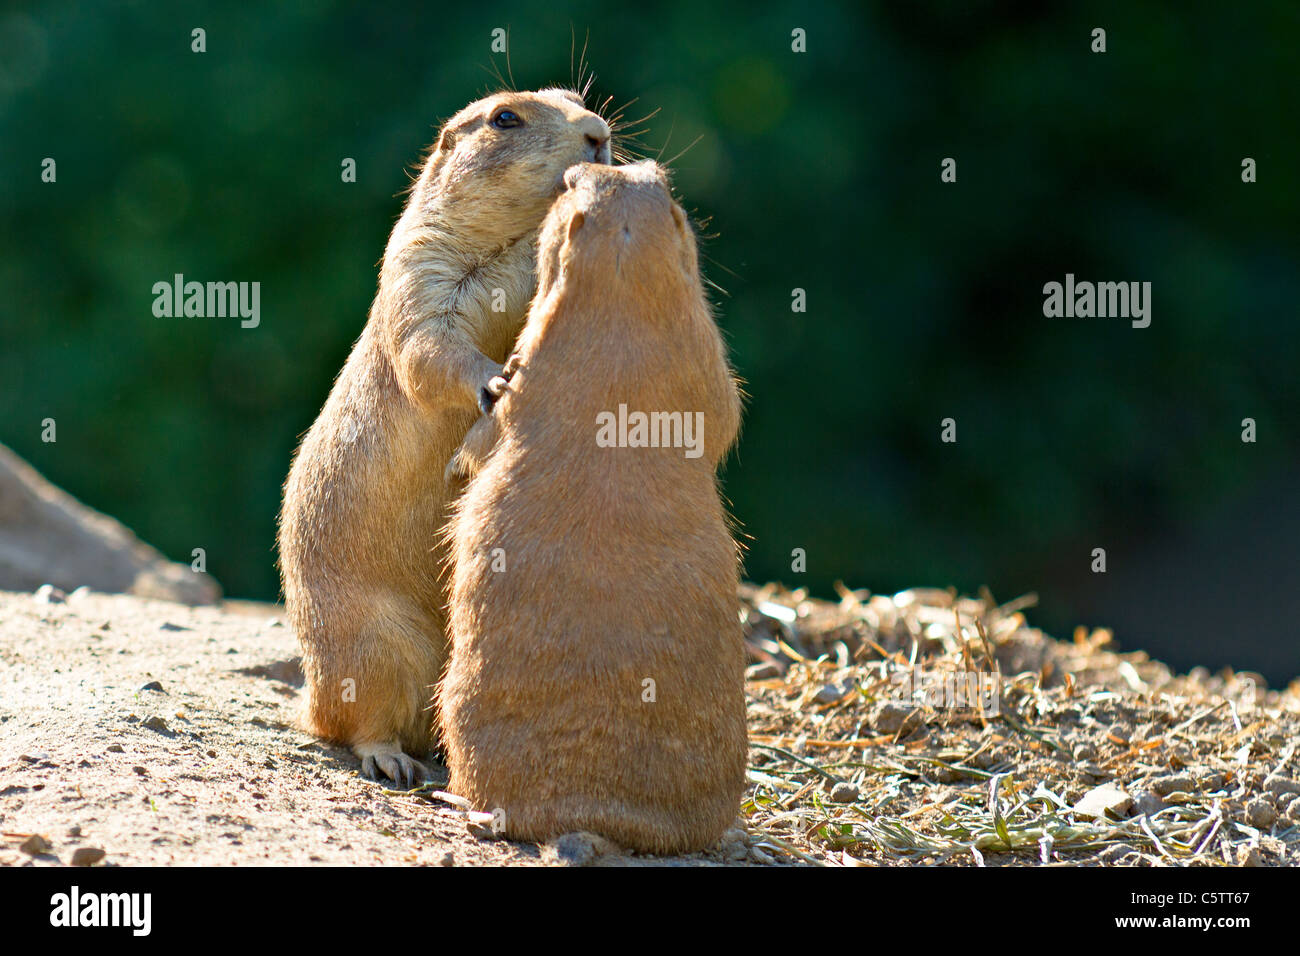 Two prairie dogs stock photos two prairie dogs stock images alamy two prairie dogs standing together holding each other stock image m4hsunfo